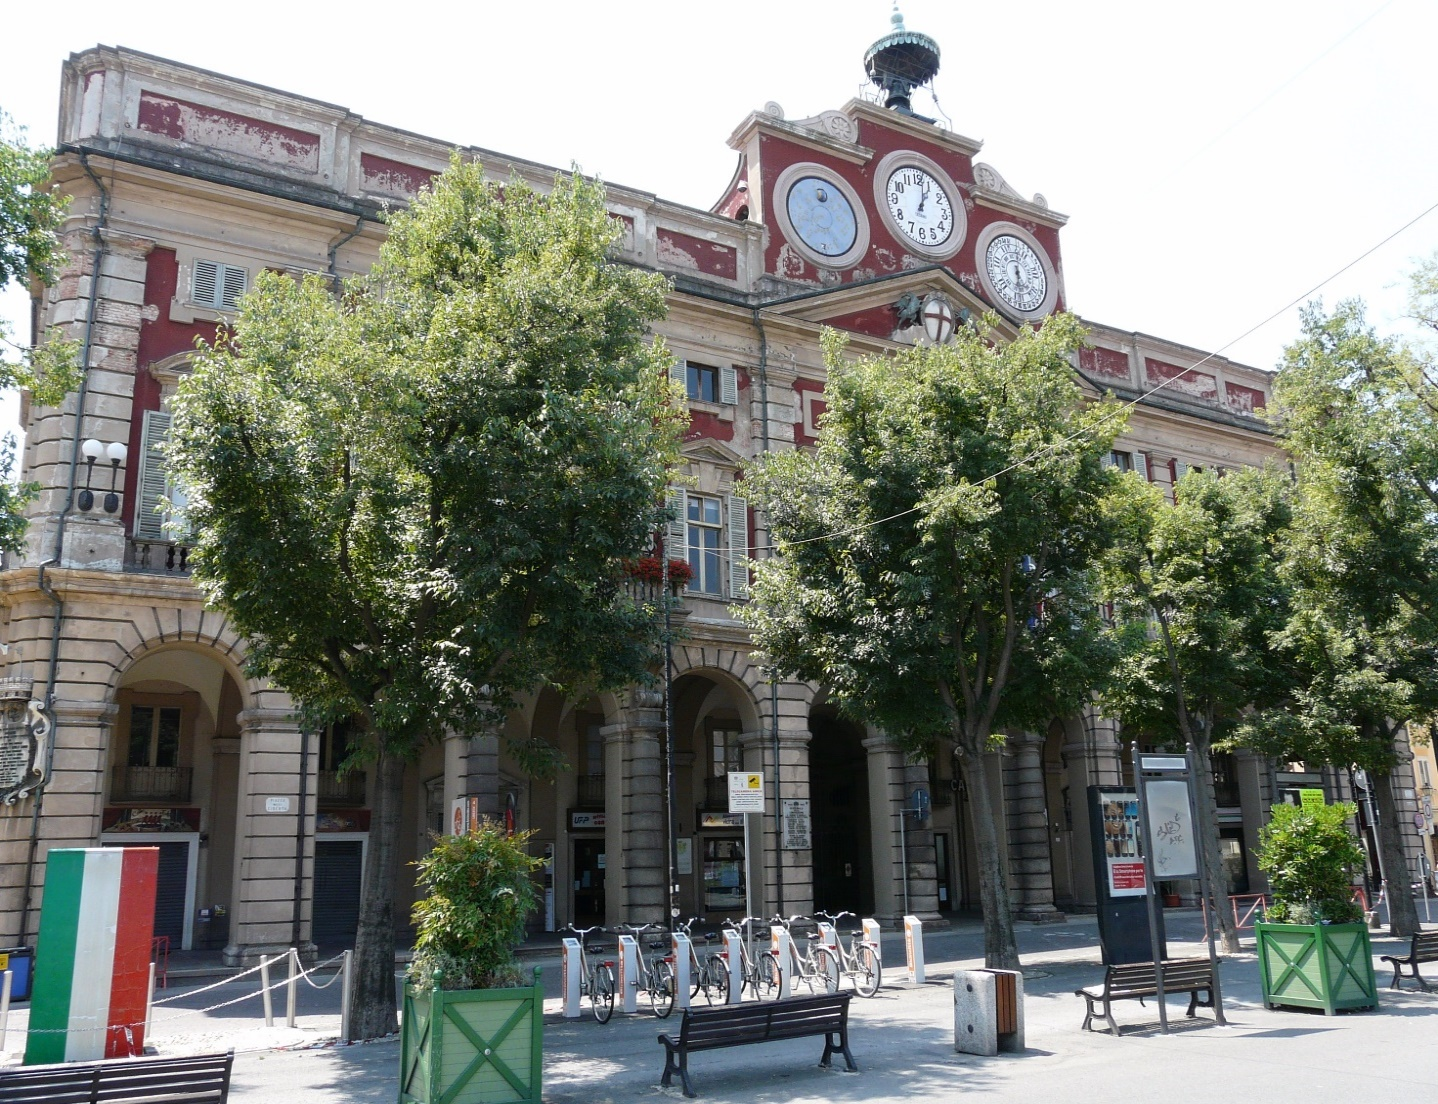 https://upload.wikimedia.org/wikipedia/commons/3/39/Alessandria-municipio1.jpg